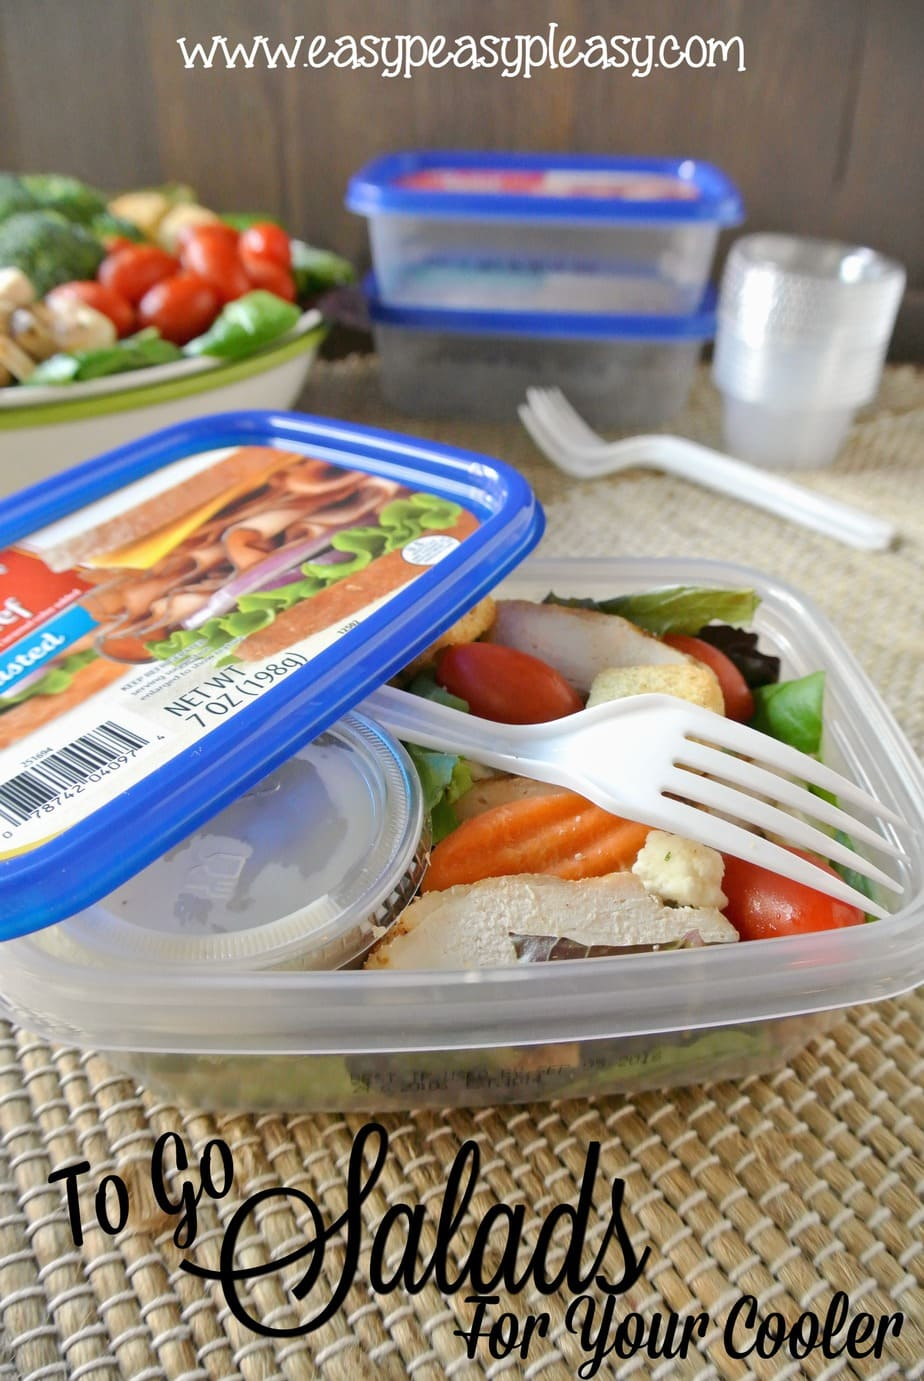 From salad to container to cooler to trash. You are gonna want all the details on how to make boating, camping, beaching, and tailgating easy with these To Go Salads for your cooler!